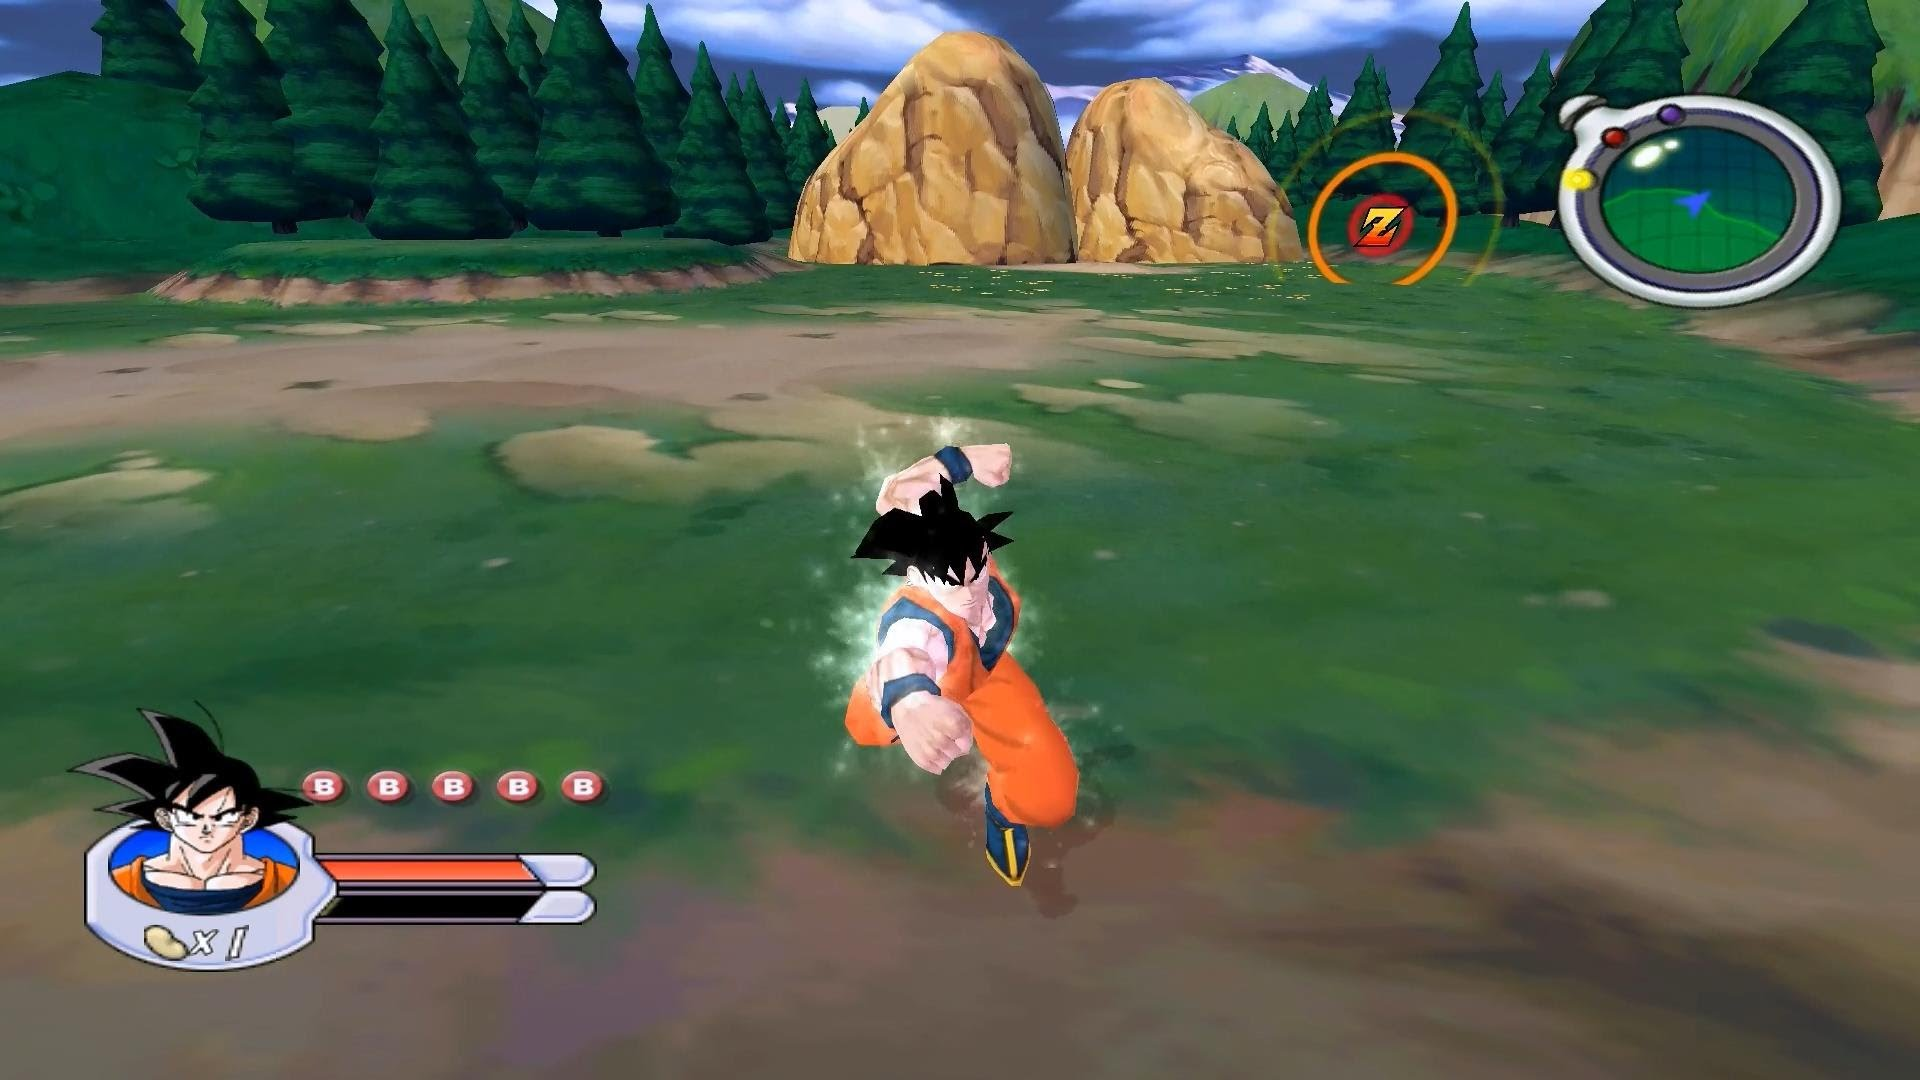 Dragon Ball Z Sagas (U)(OneUp) ROM / ISO Download for GameCube - Rom